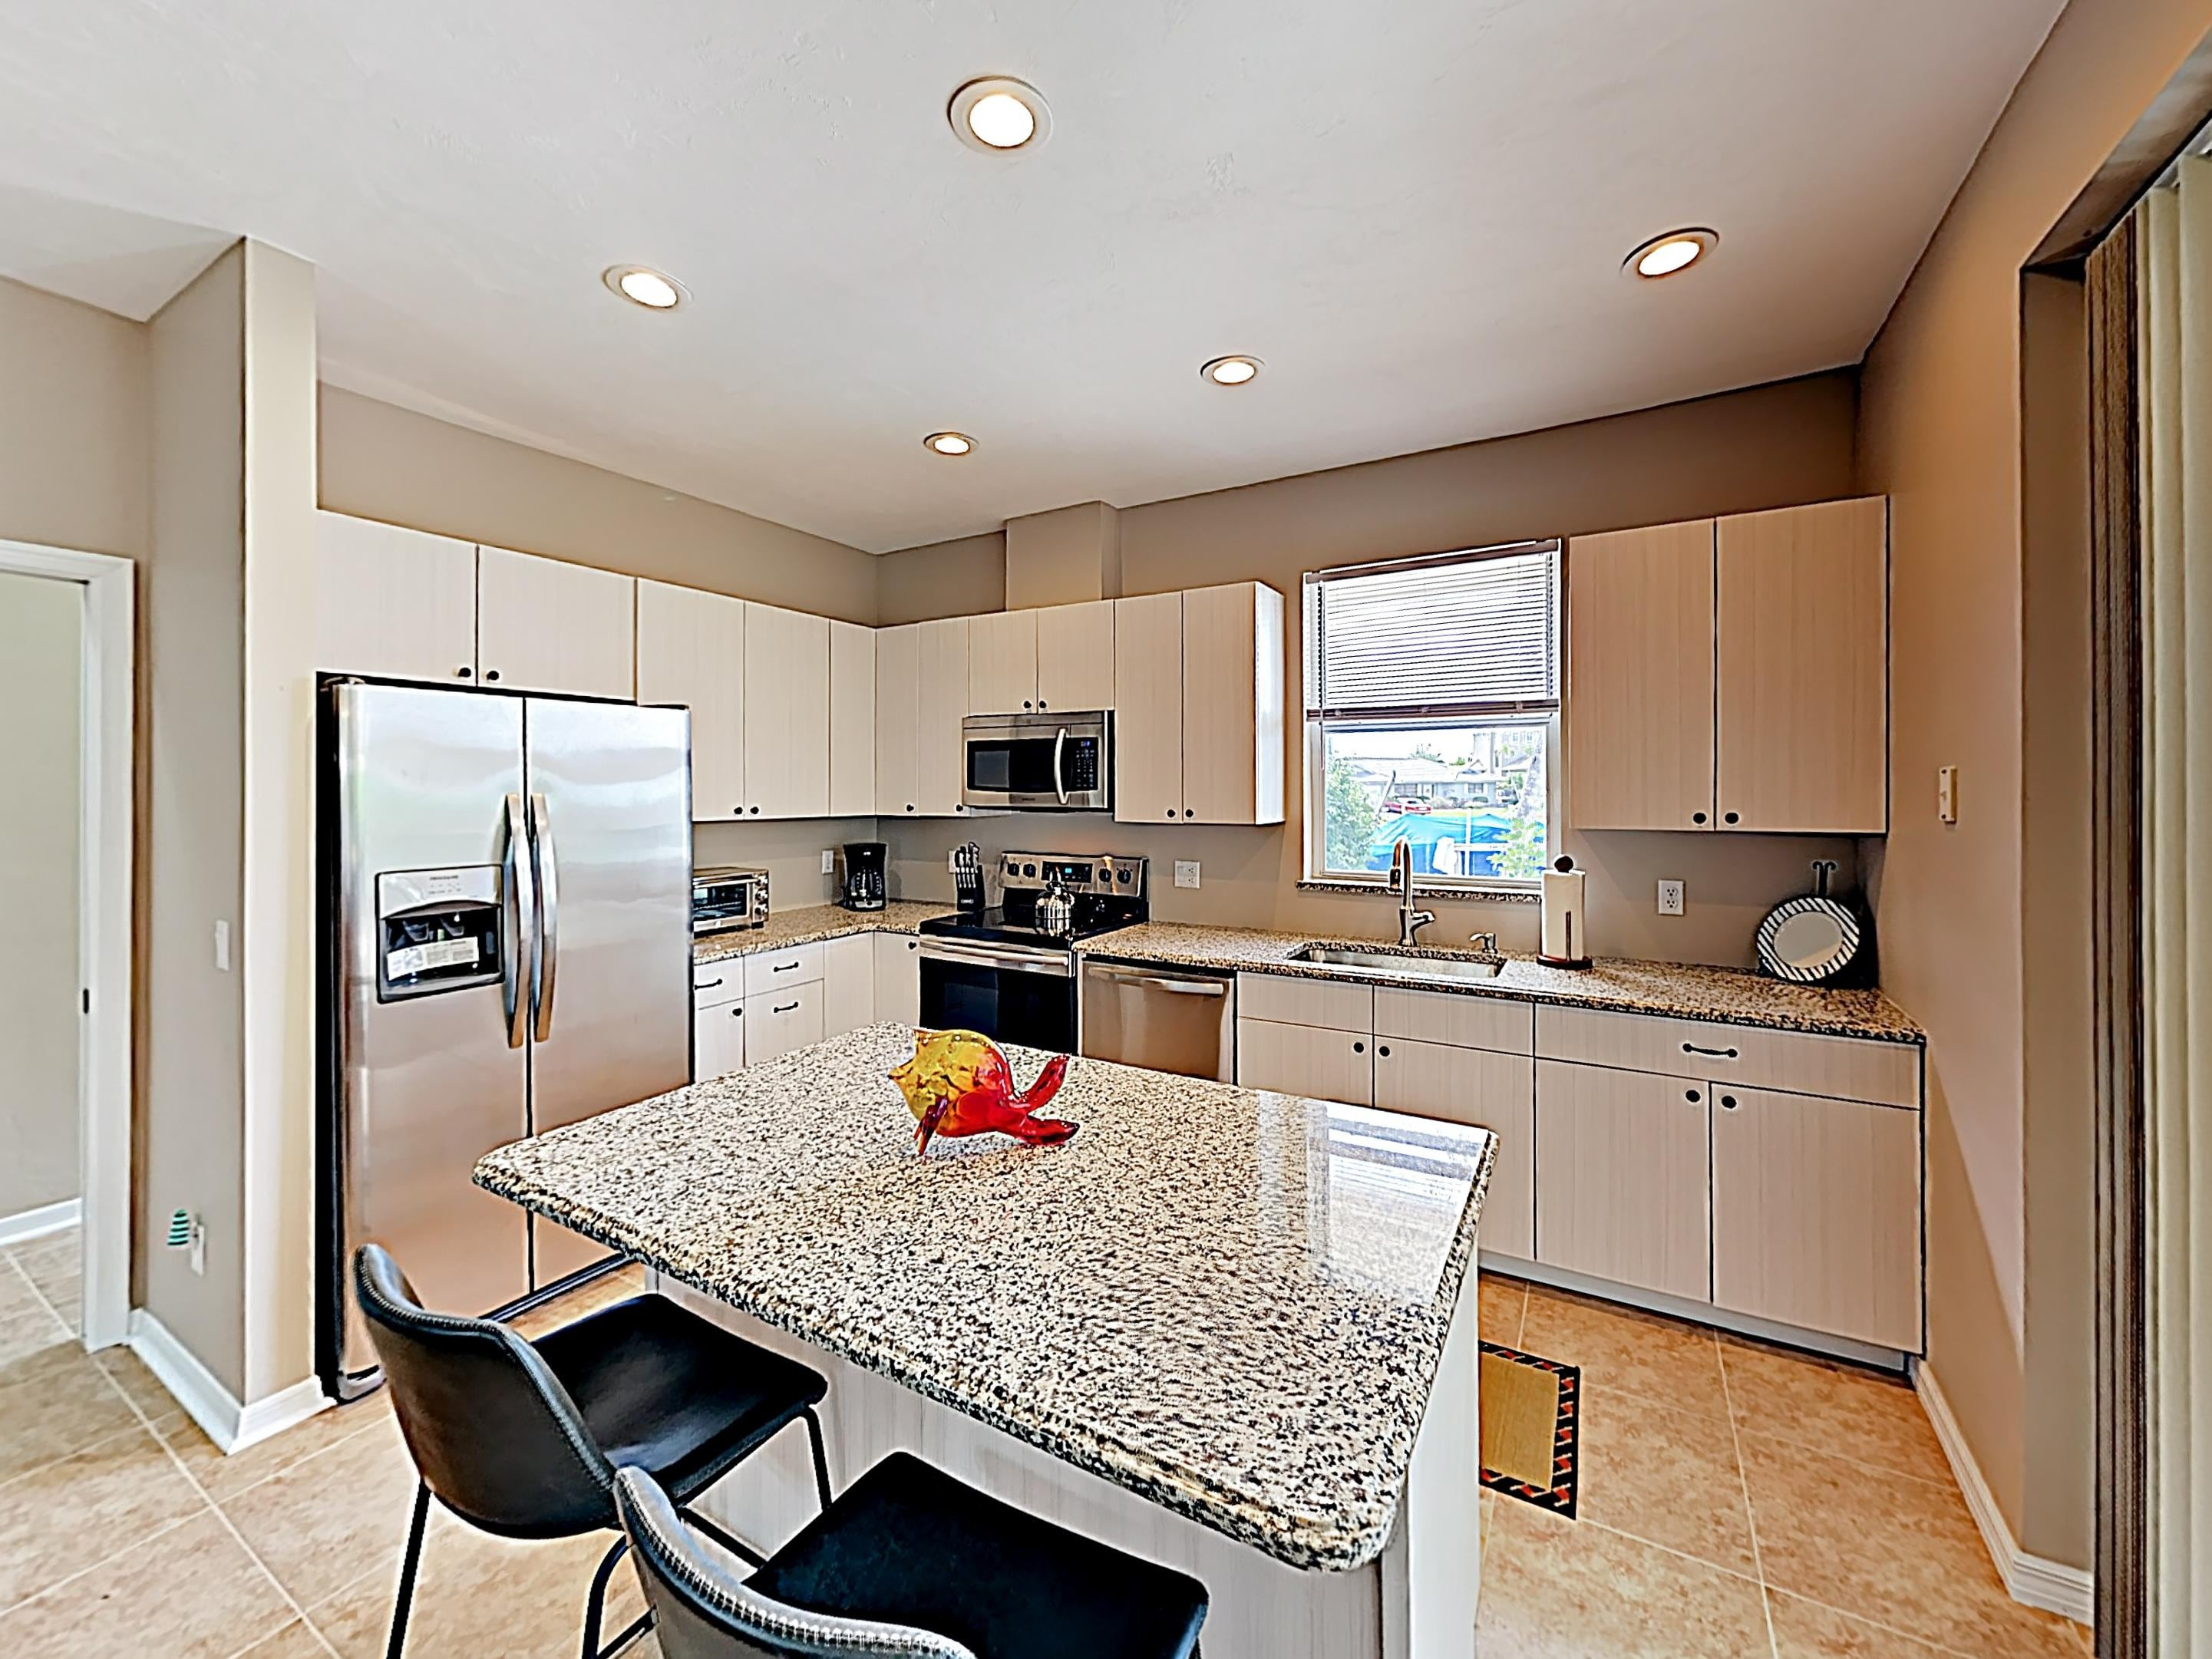 A contemporary kitchen includes a 2-person breakfast bar.